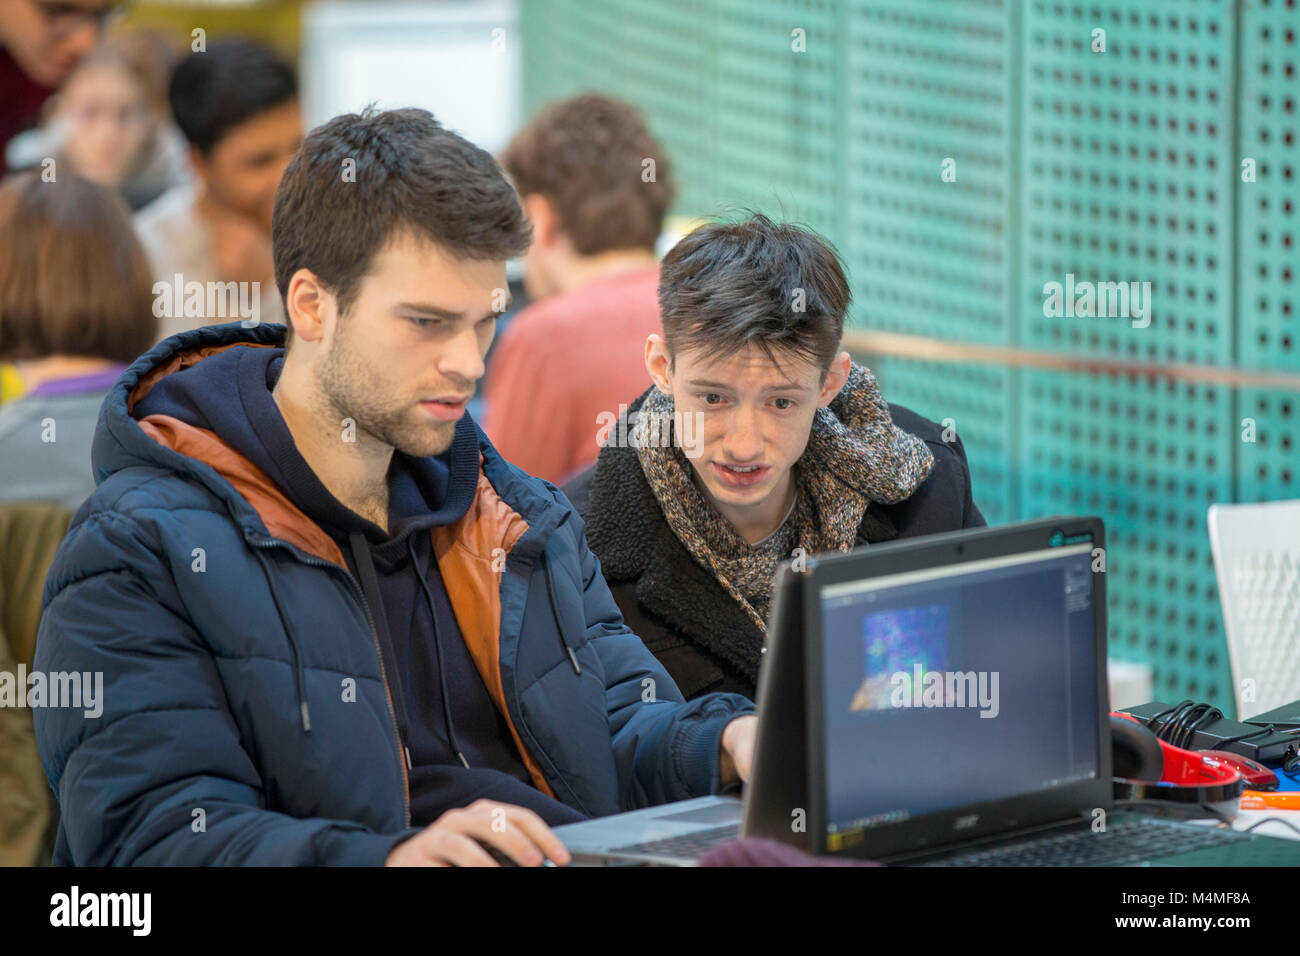 students and young adults studying and socialising - Stock Image